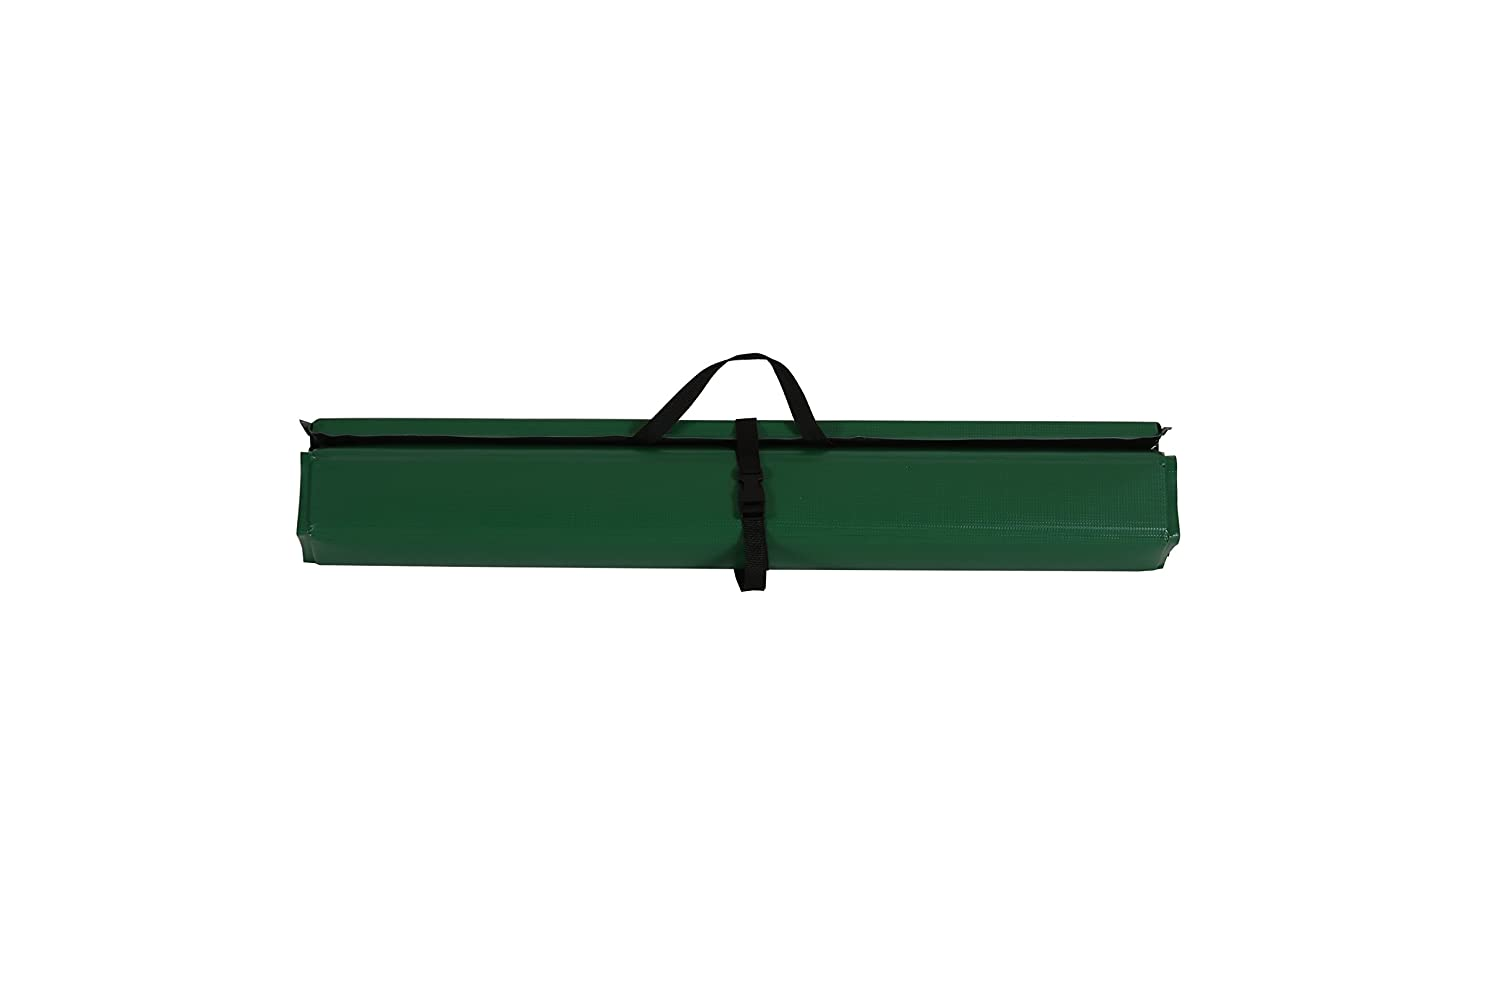 Camp Time, Roll-a-Table, Green, Fold Up Roll Out Table Top, Compact, Portable, USA Made